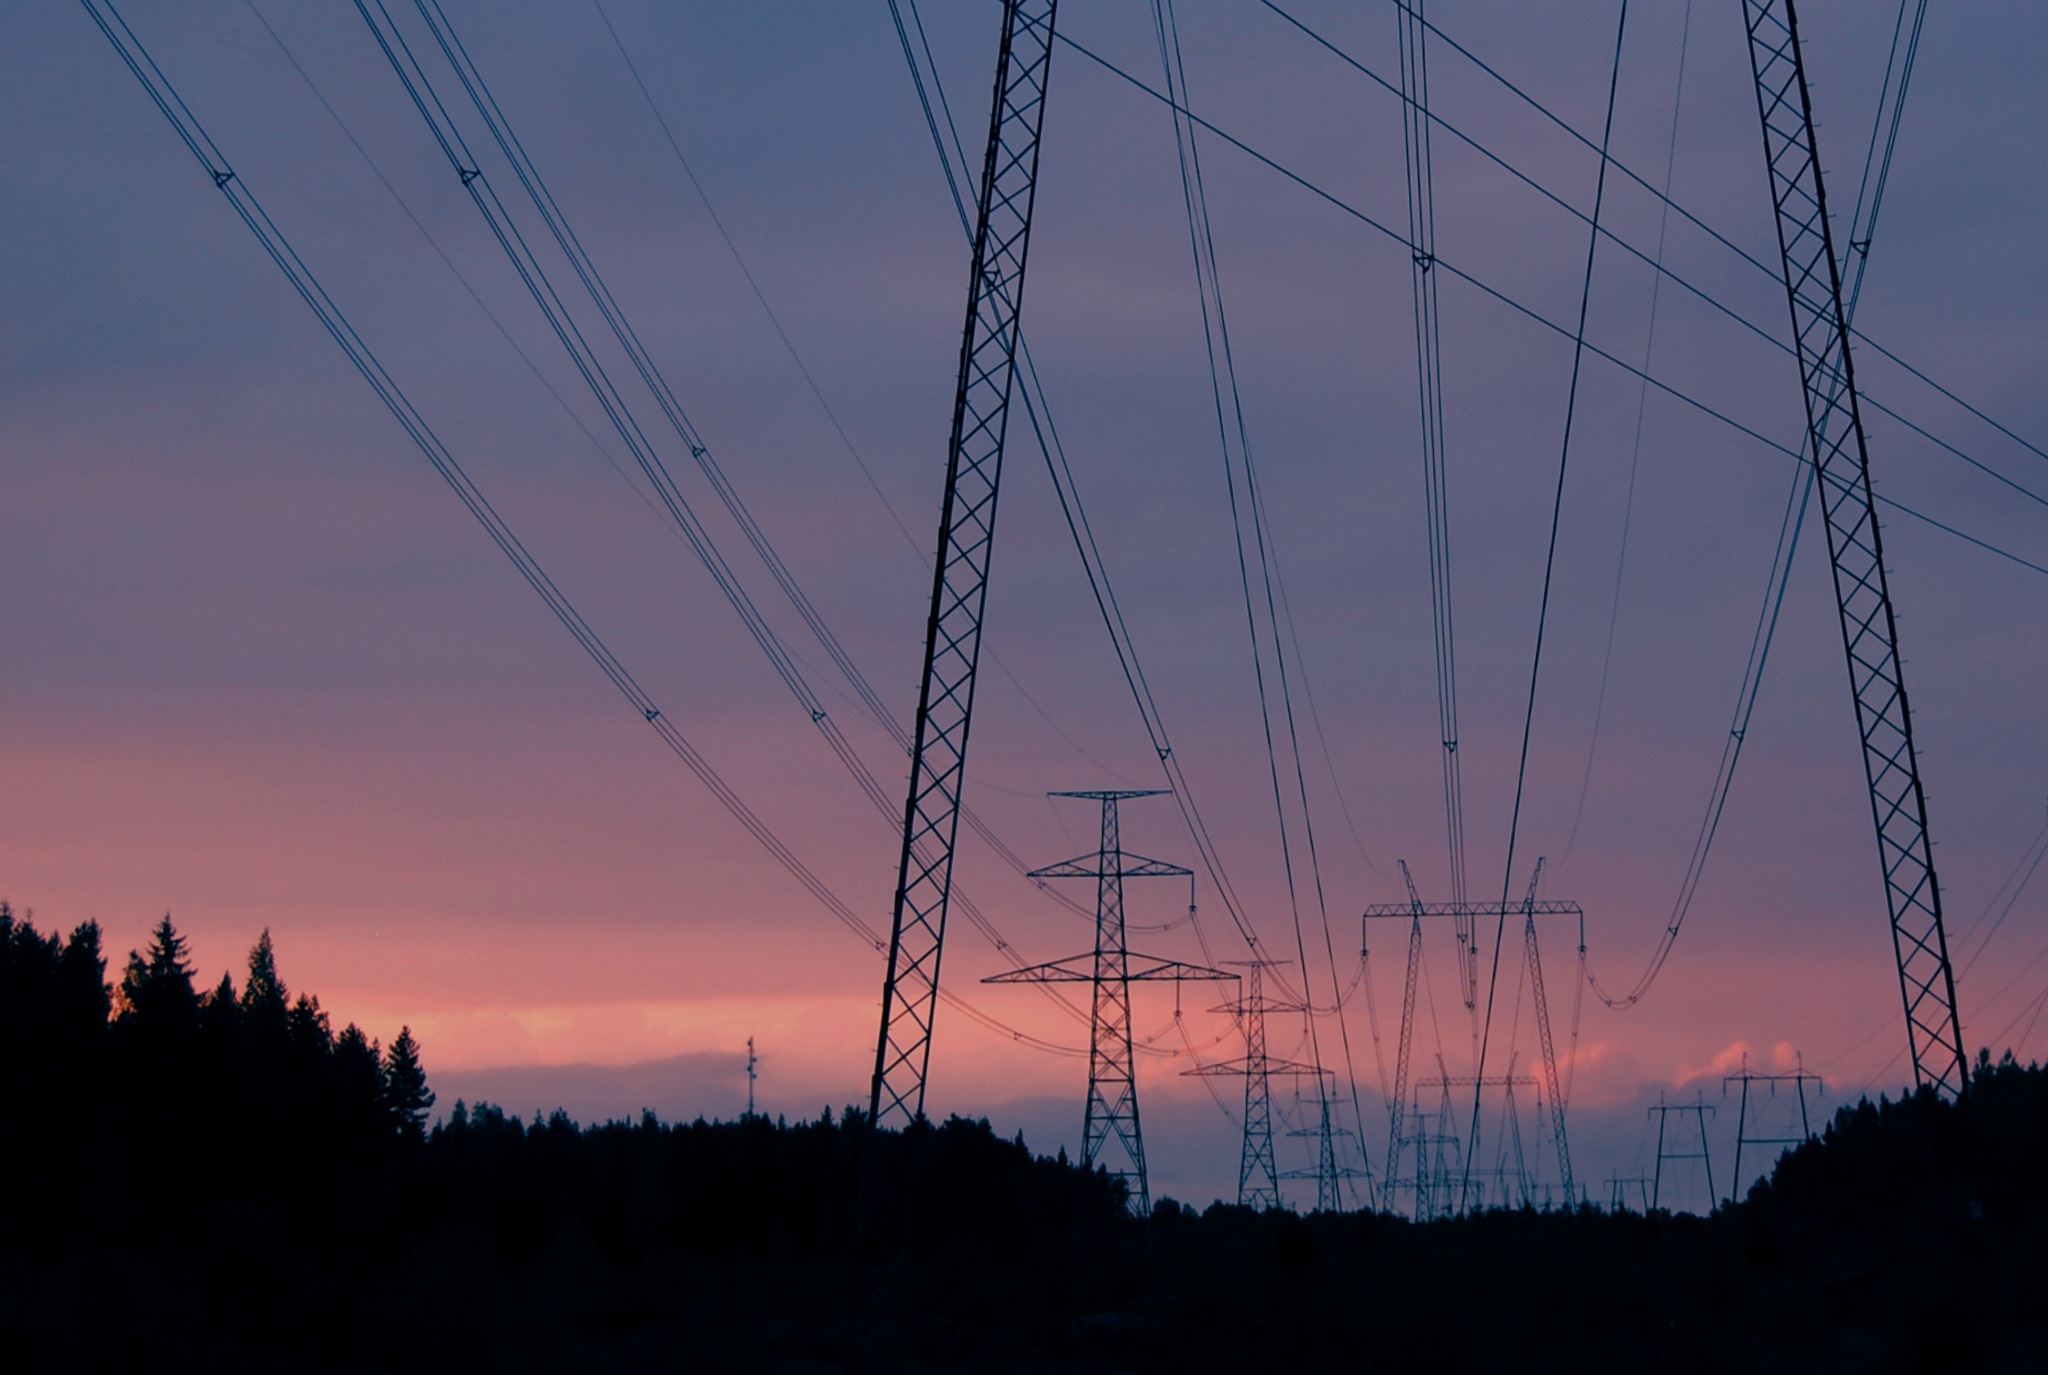 Nuclear power plant - production of Finland the power grid by laura.kamil